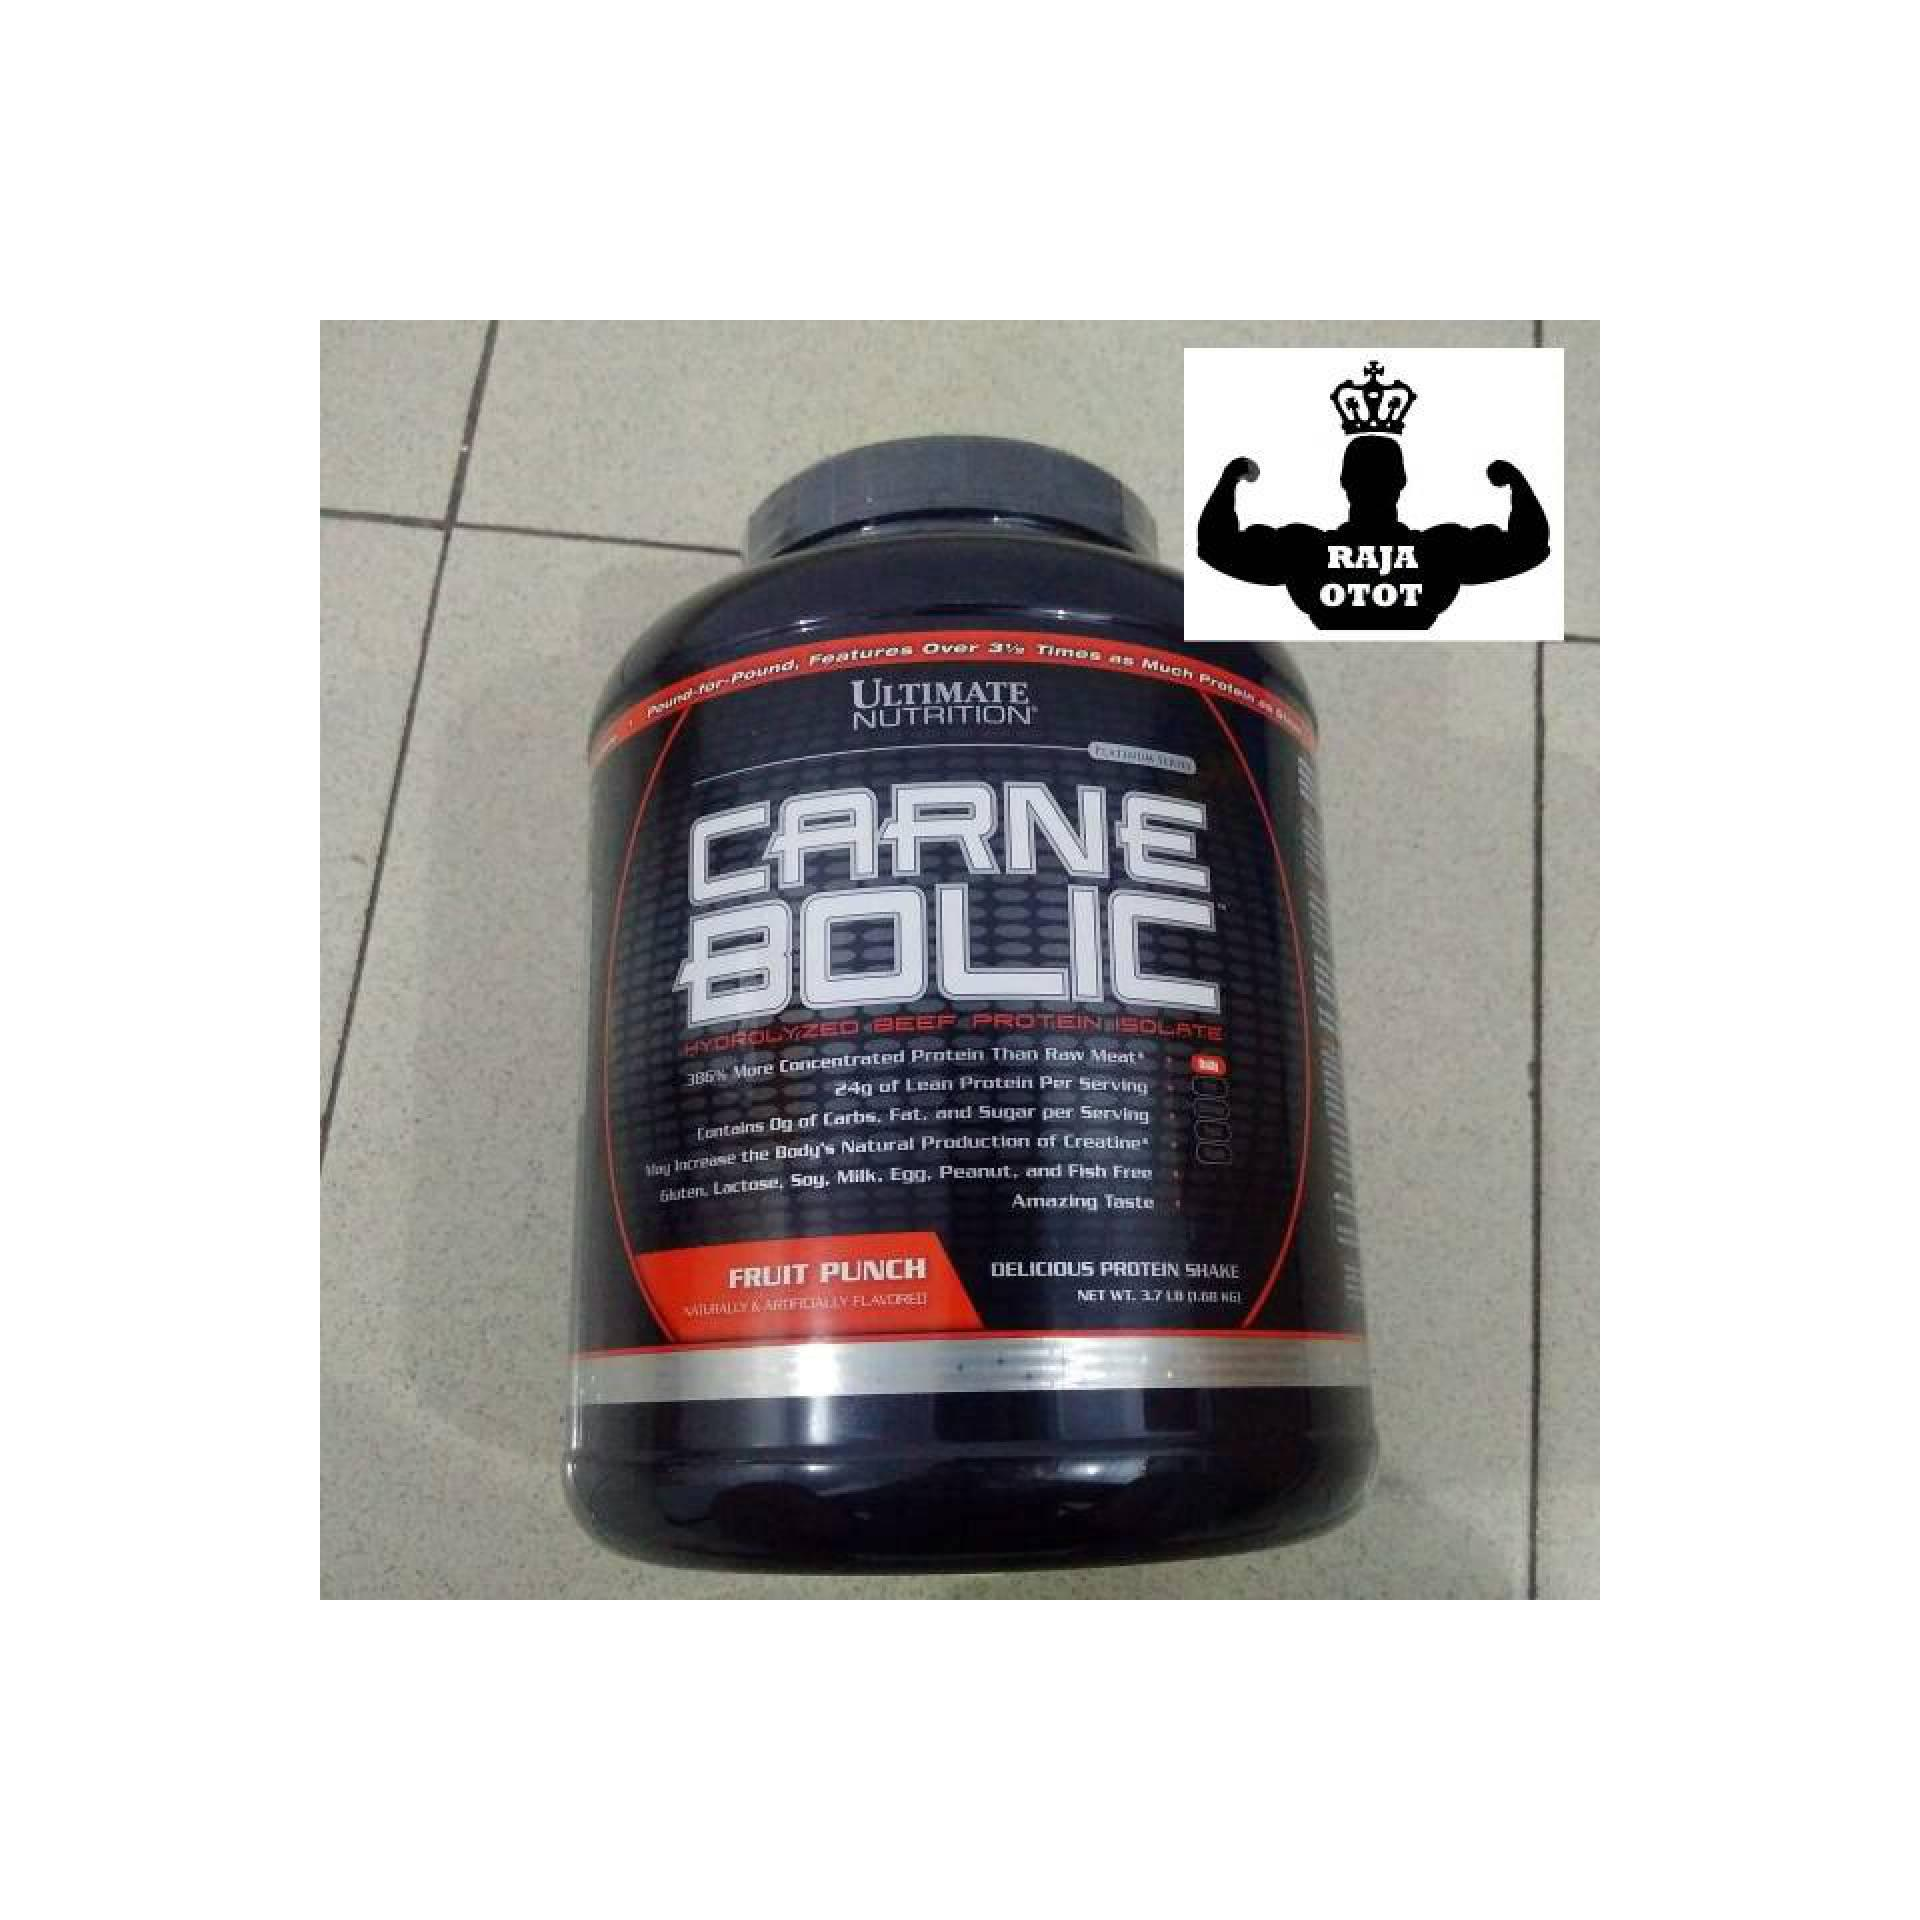 Carne Bolic 3.7 Lbs Ultimate Nutrition Beef Protein Isolate CarneBolic